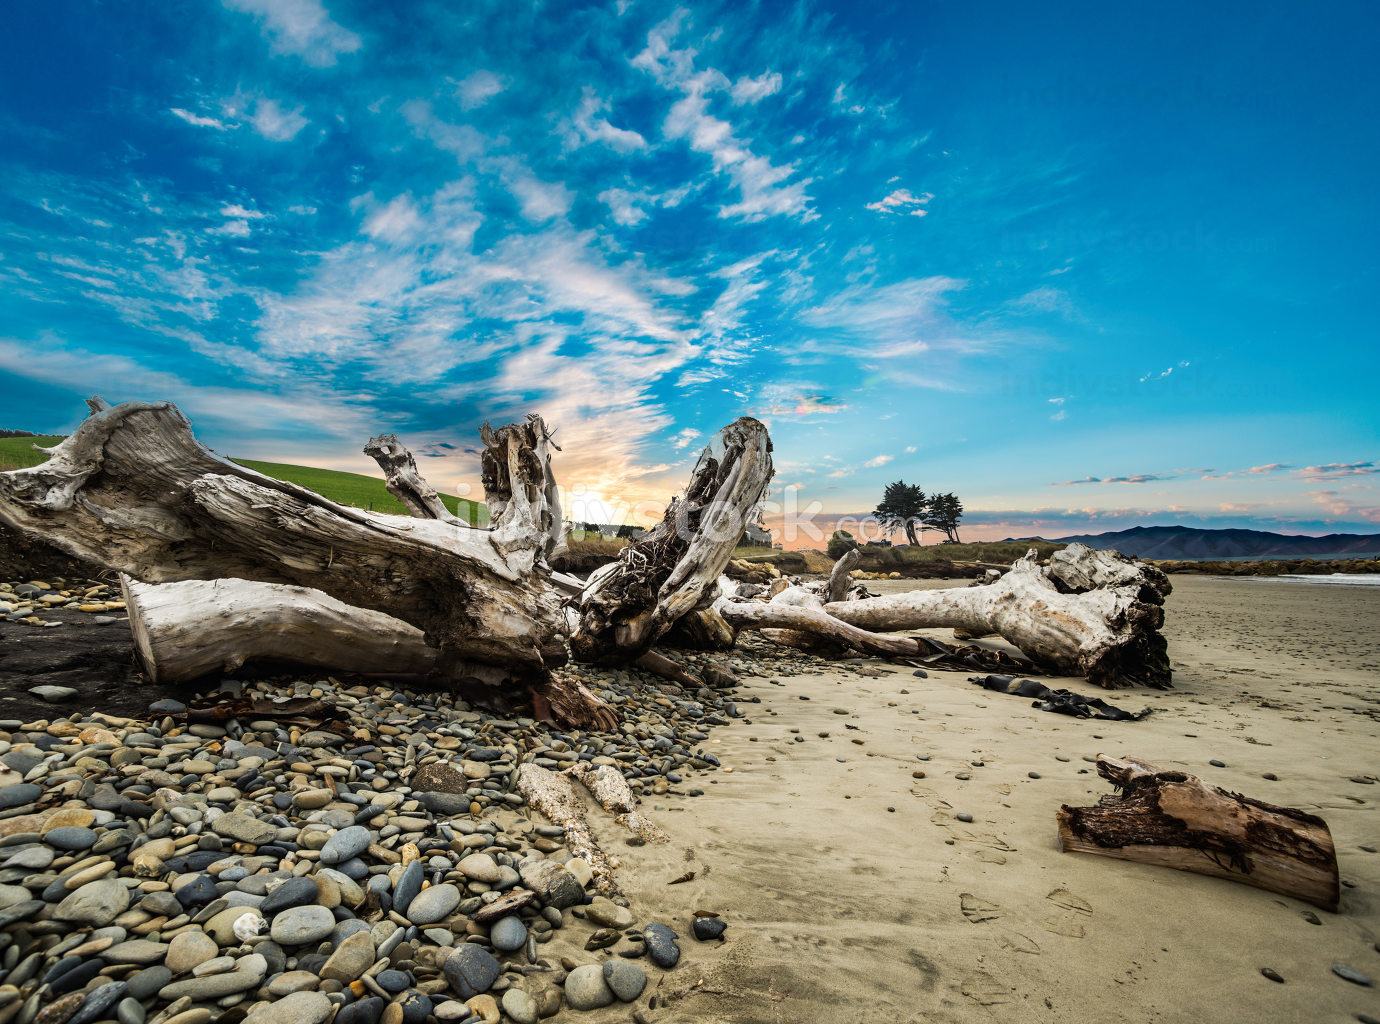 Tree/Leading Lines/A close up of a driftwood tree truck on the beach.